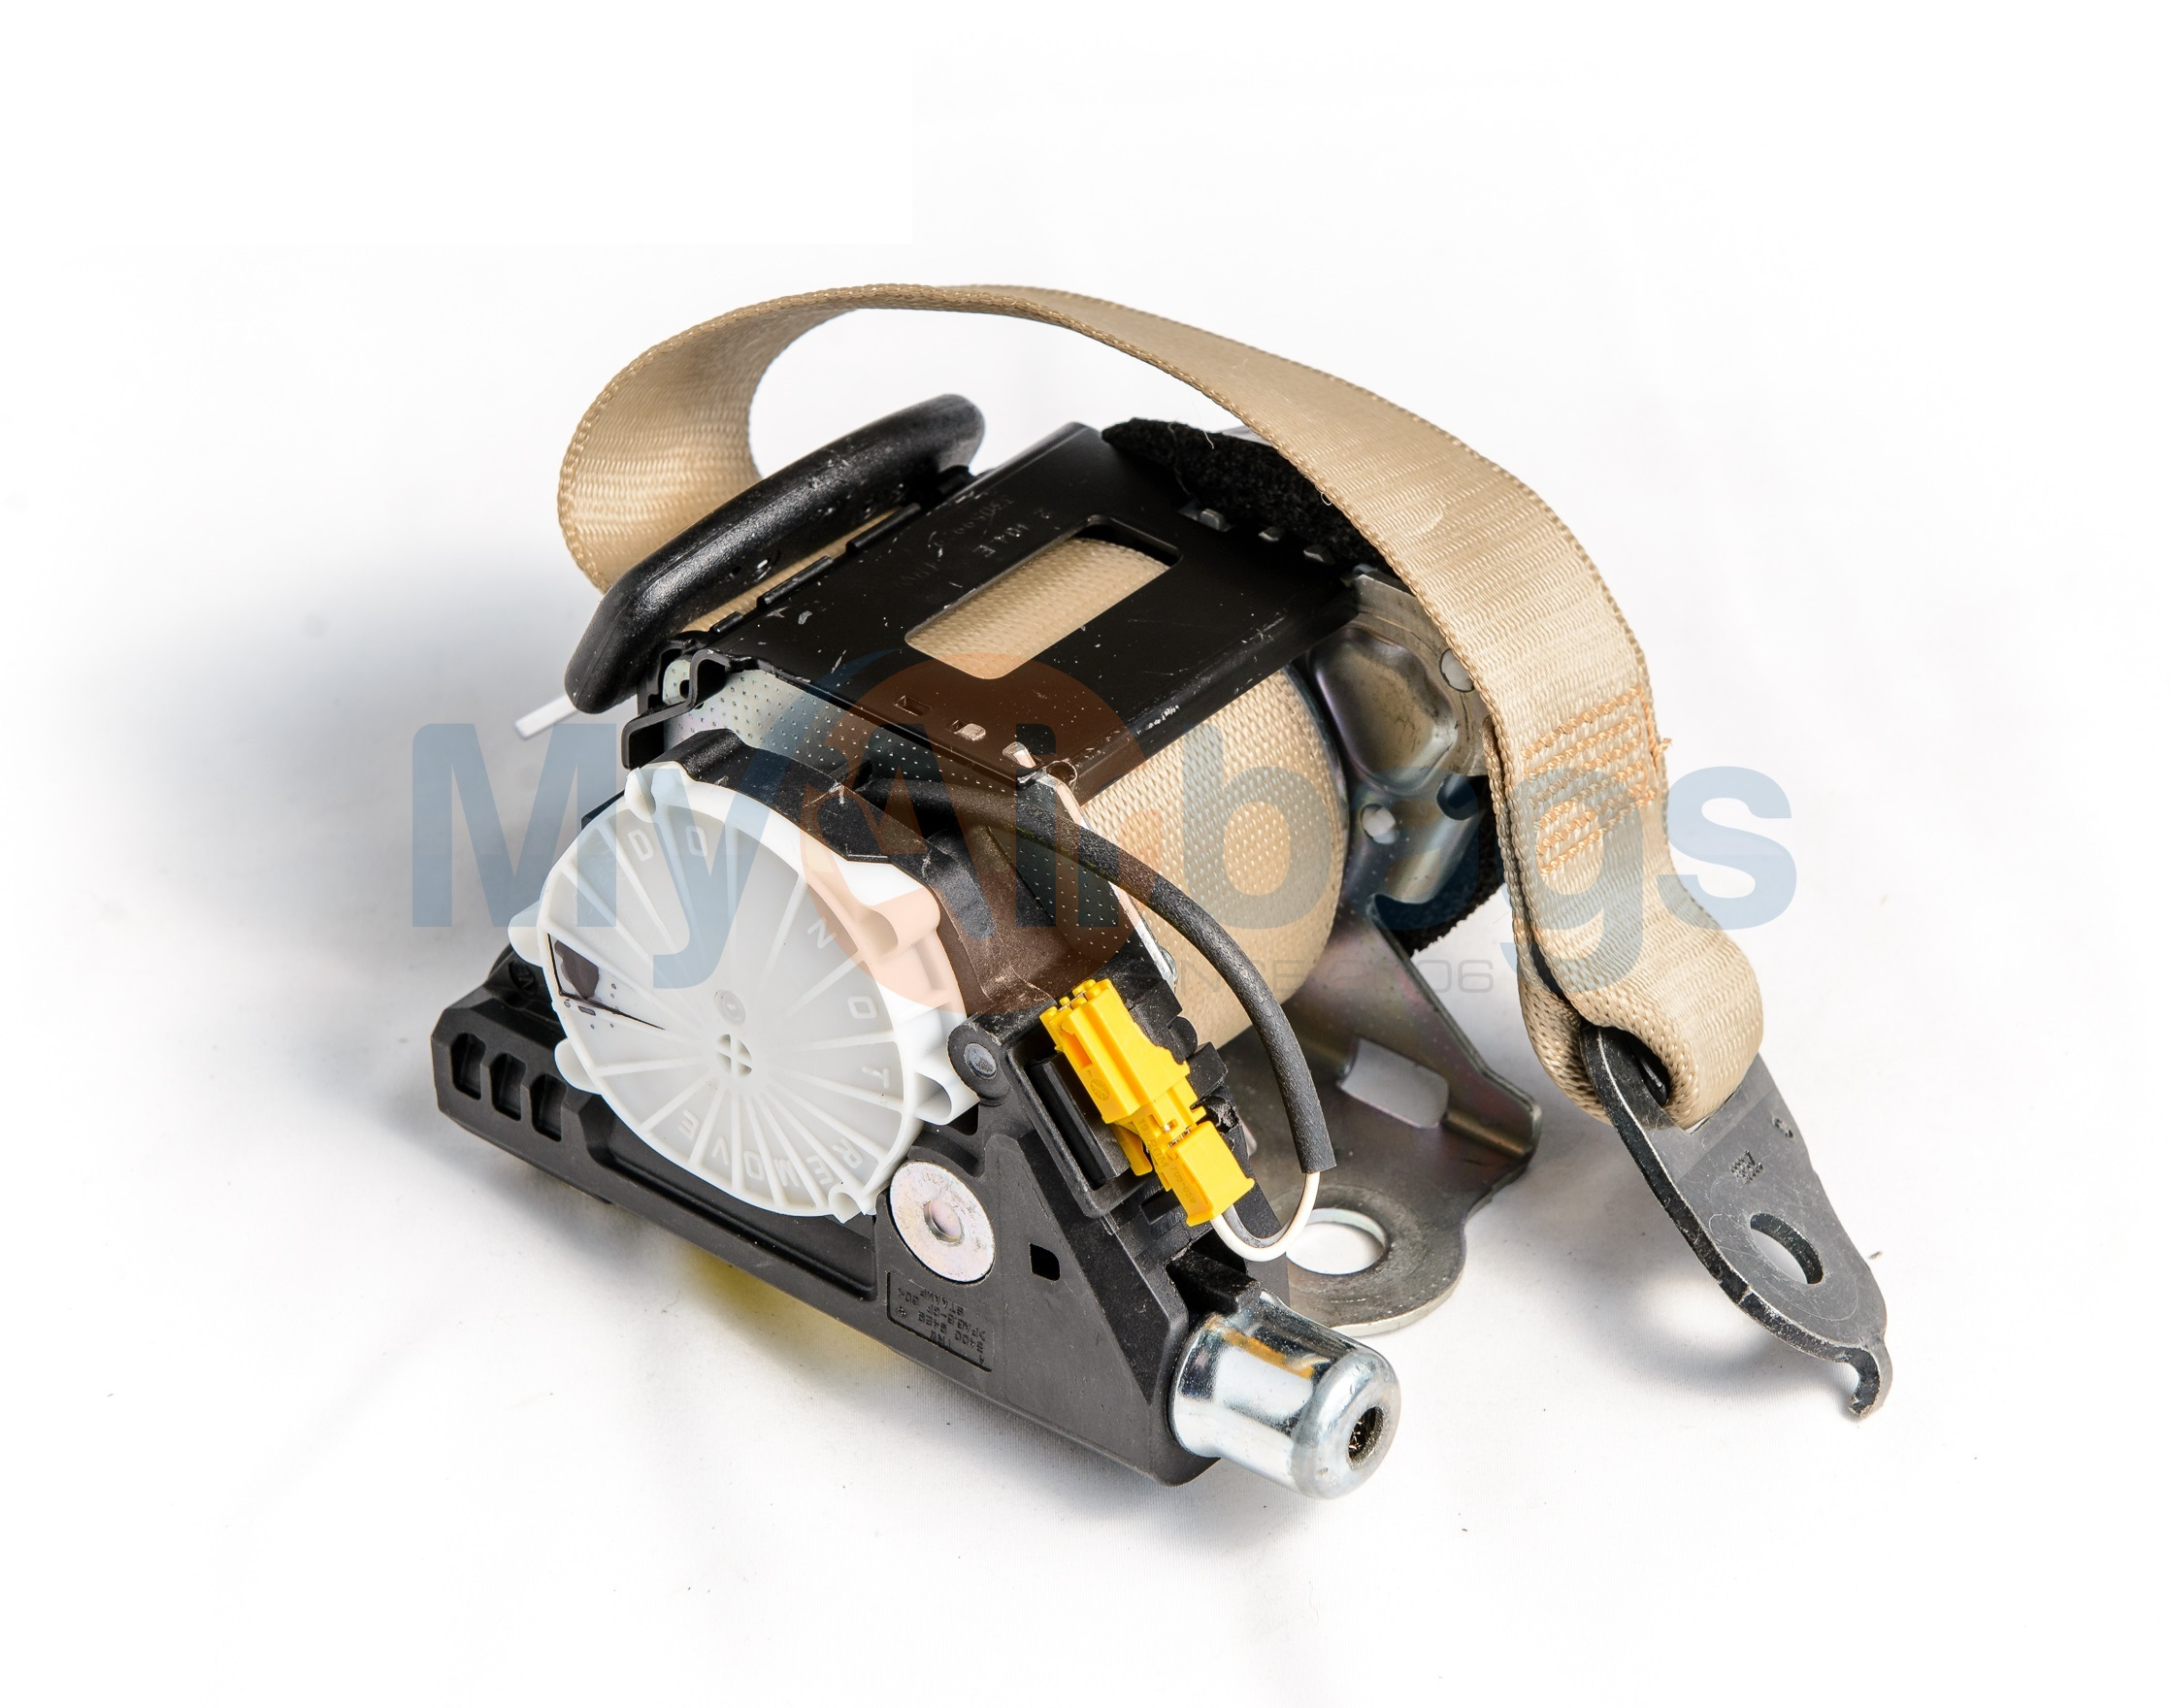 MyAirbags-Seat-Belt-Pretensioner-Repair-Replacment-15.jpg